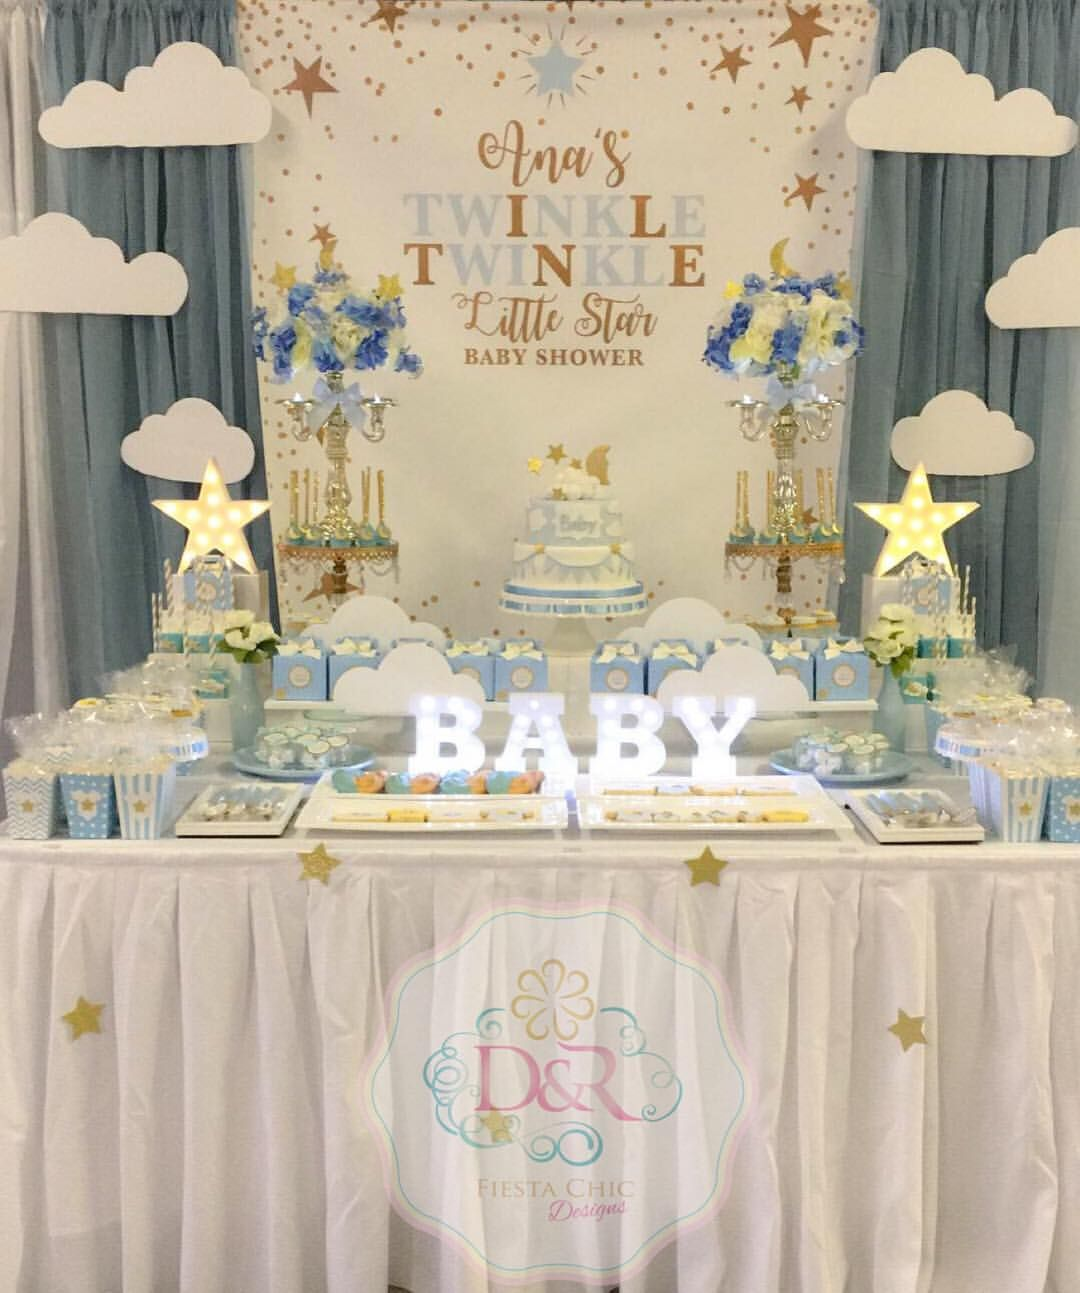 Twinkle Little Star Baby Shower Decorations | www ...